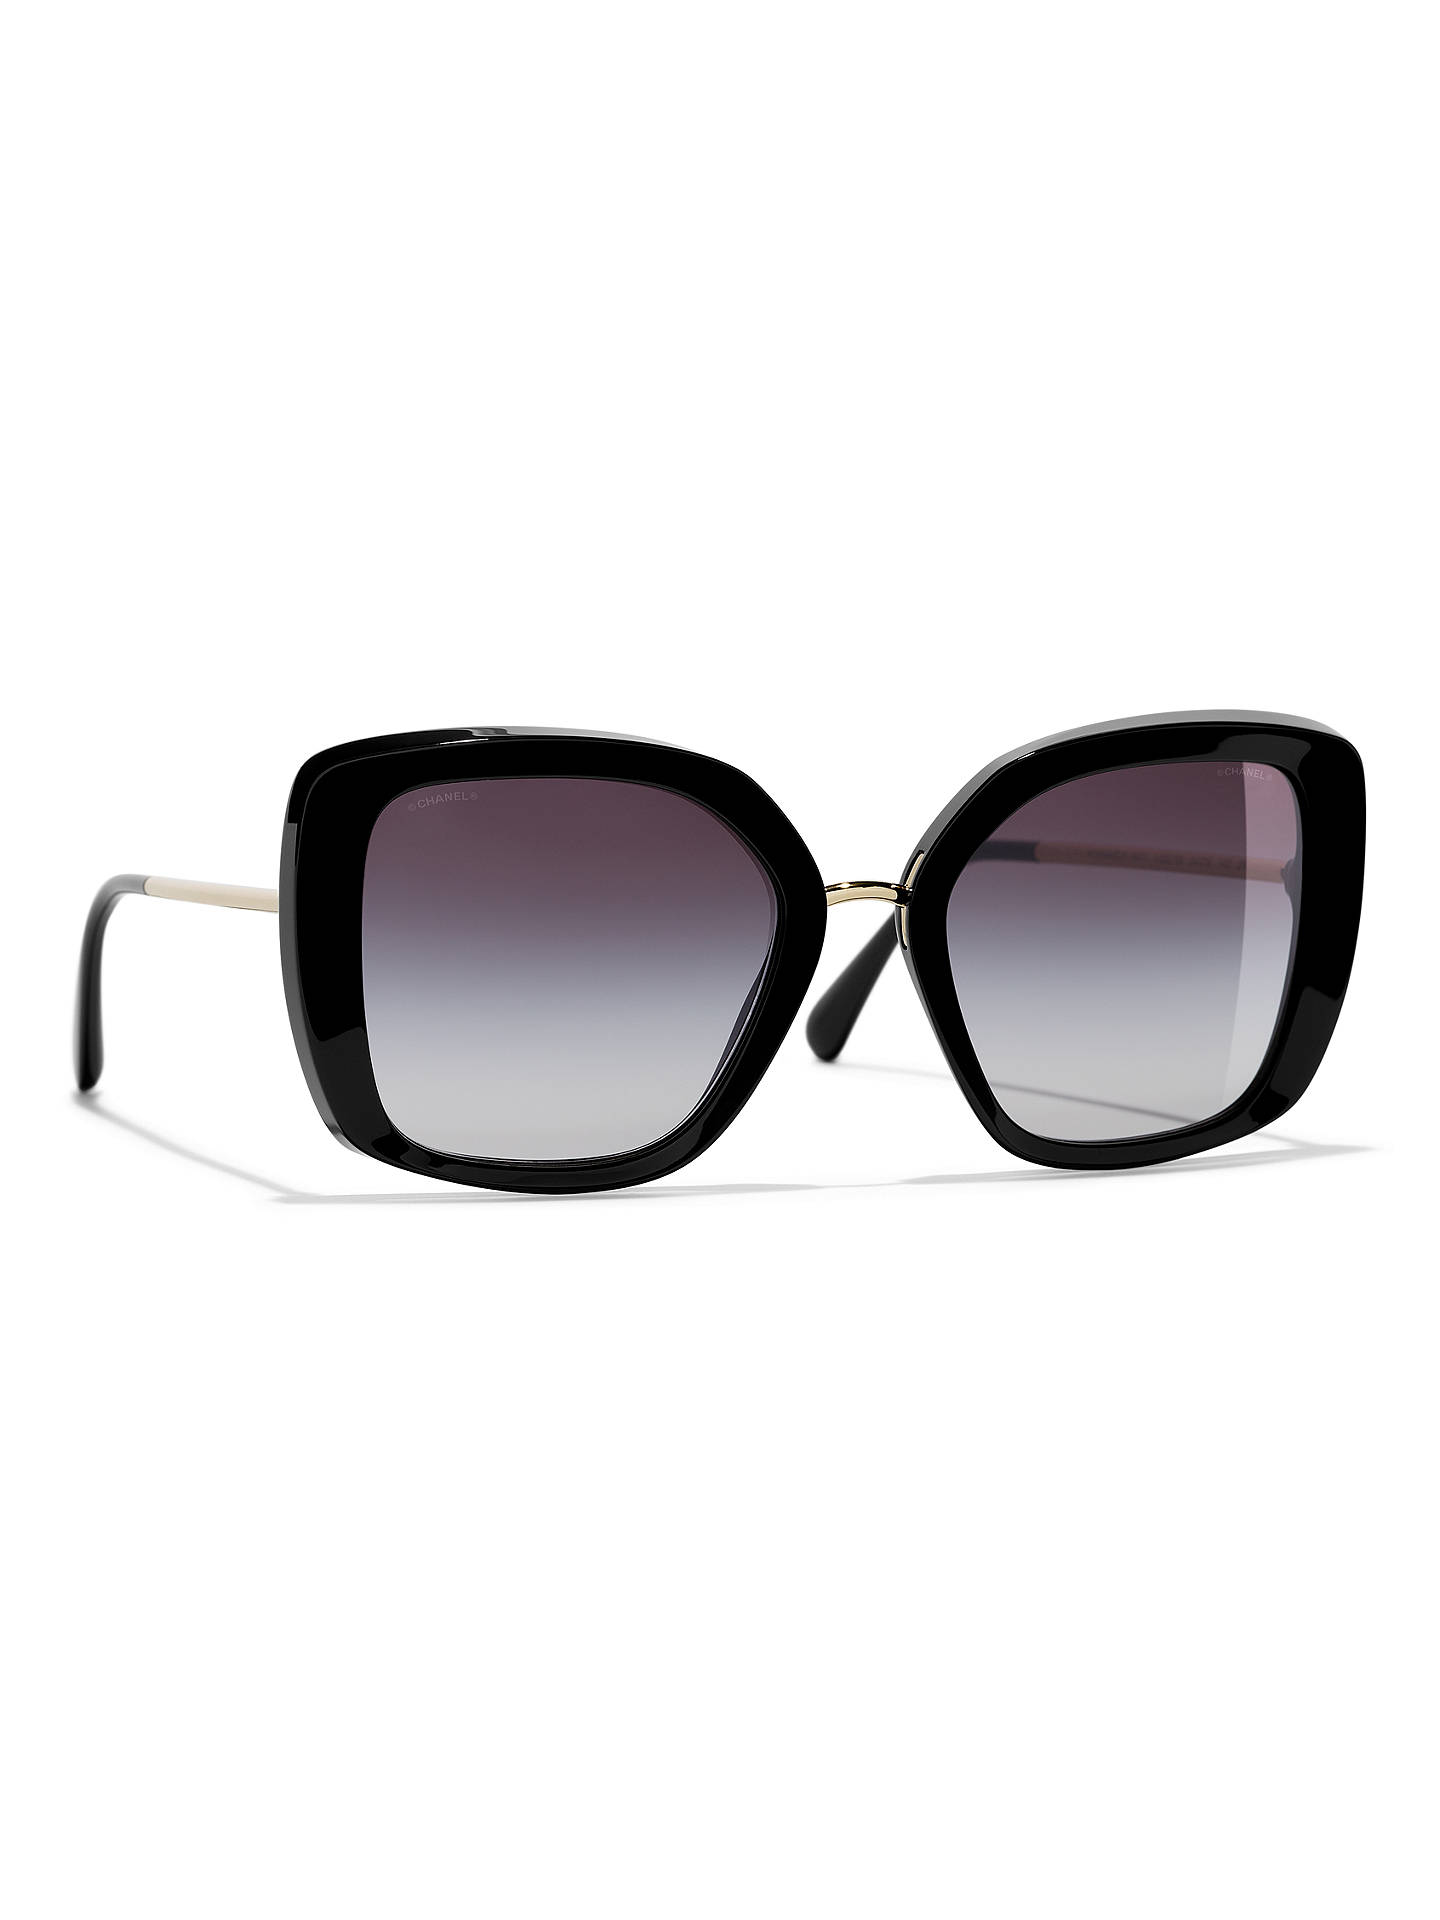 0a682fa5b51f Buy CHANEL Square Sunglasses CH5401 Dark Brown Online at johnlewis.com ...